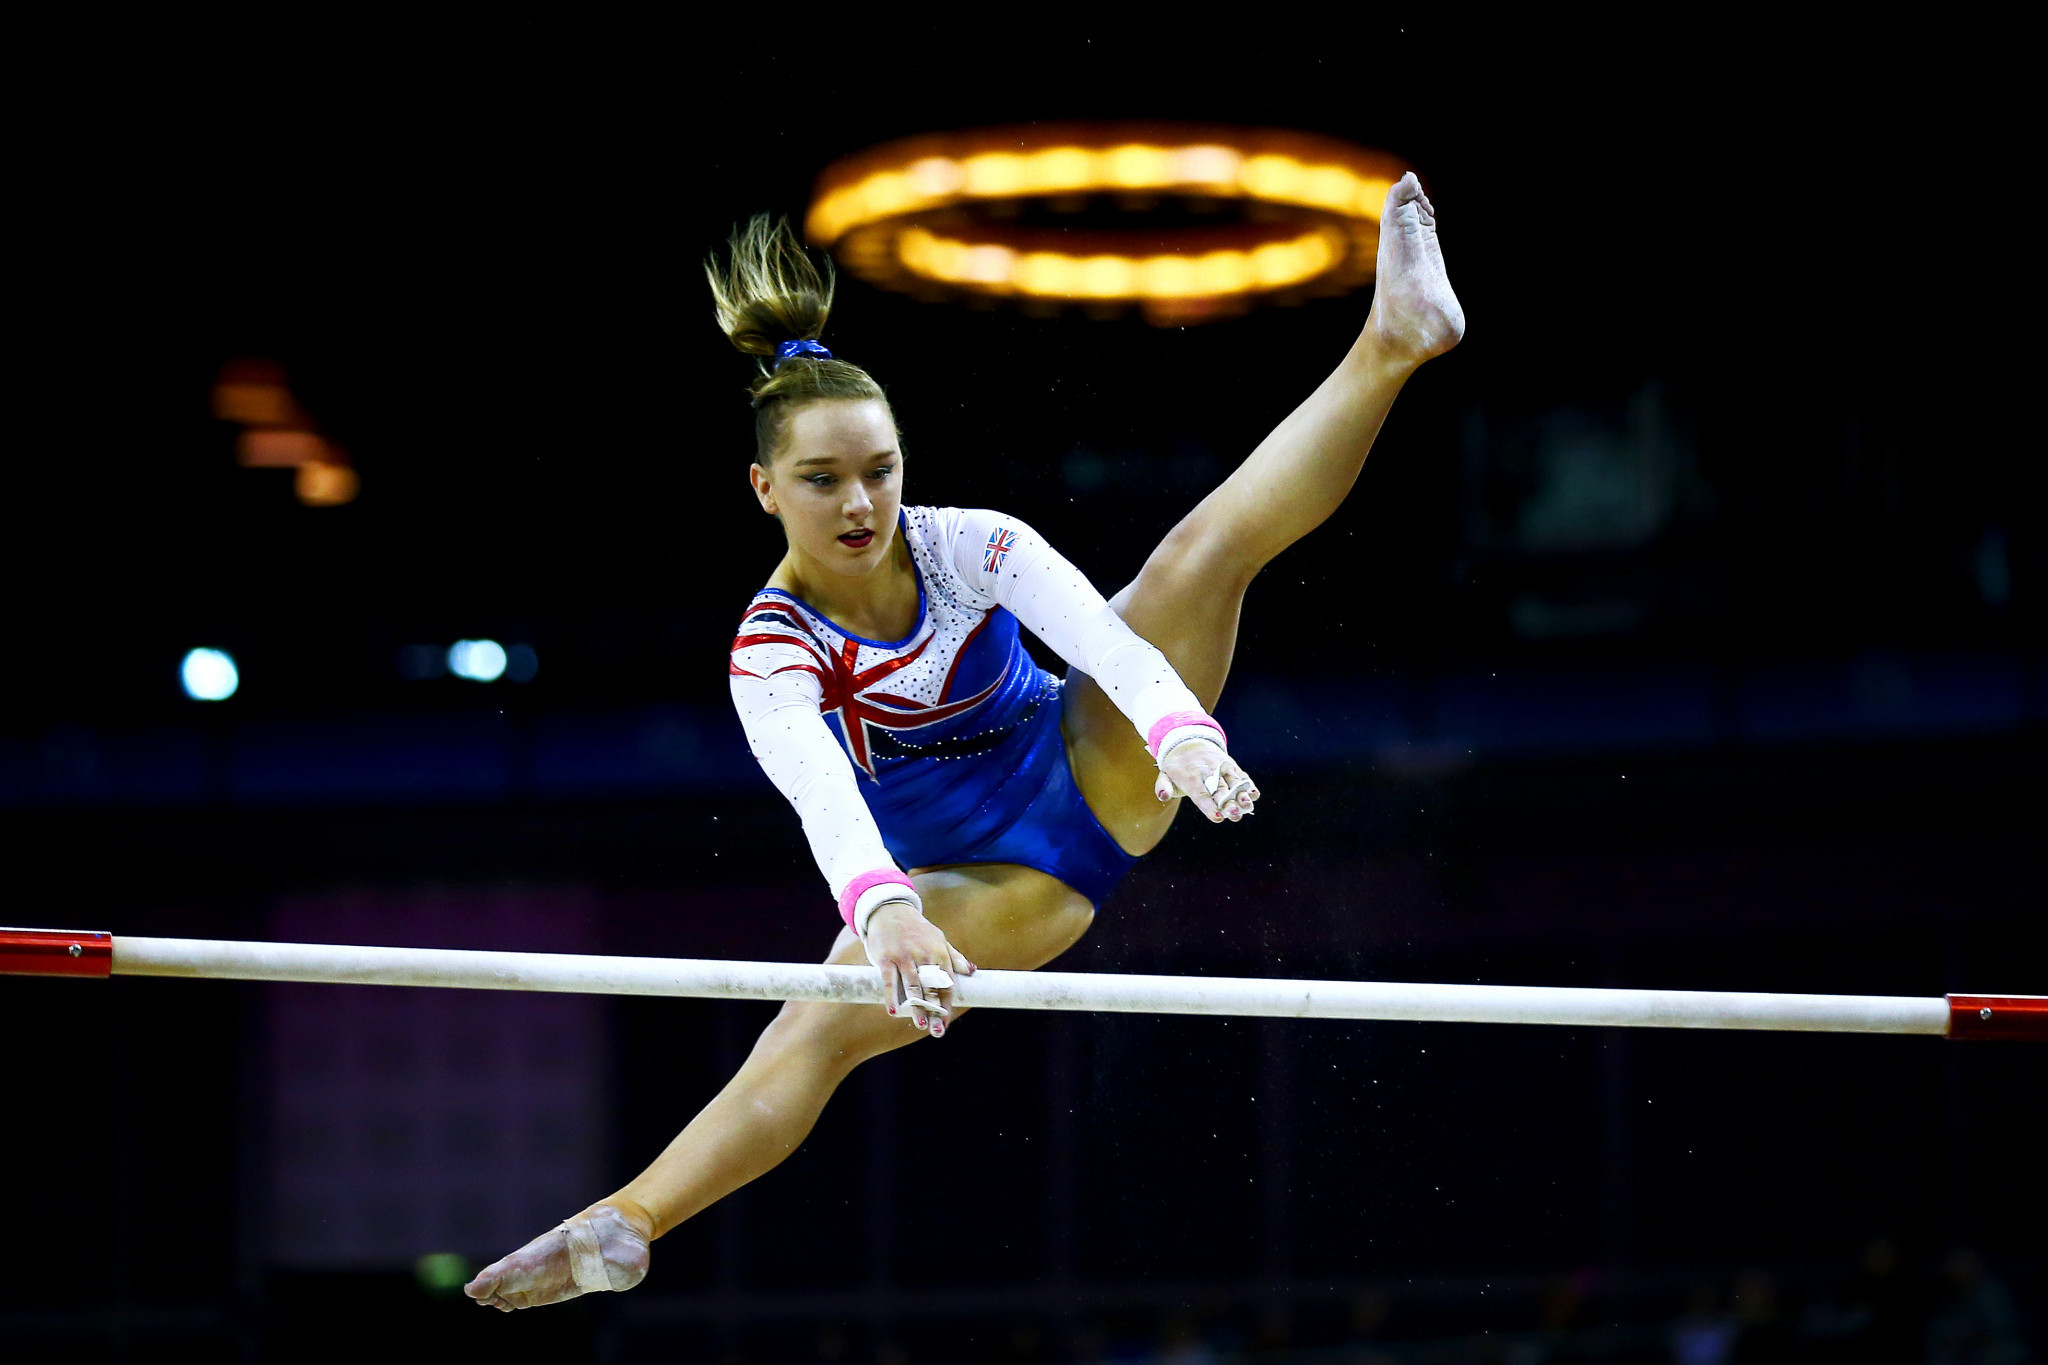 Amy Tinkler has been one of the loudest voices during the gymnastics abuse scandals ©Getty Images